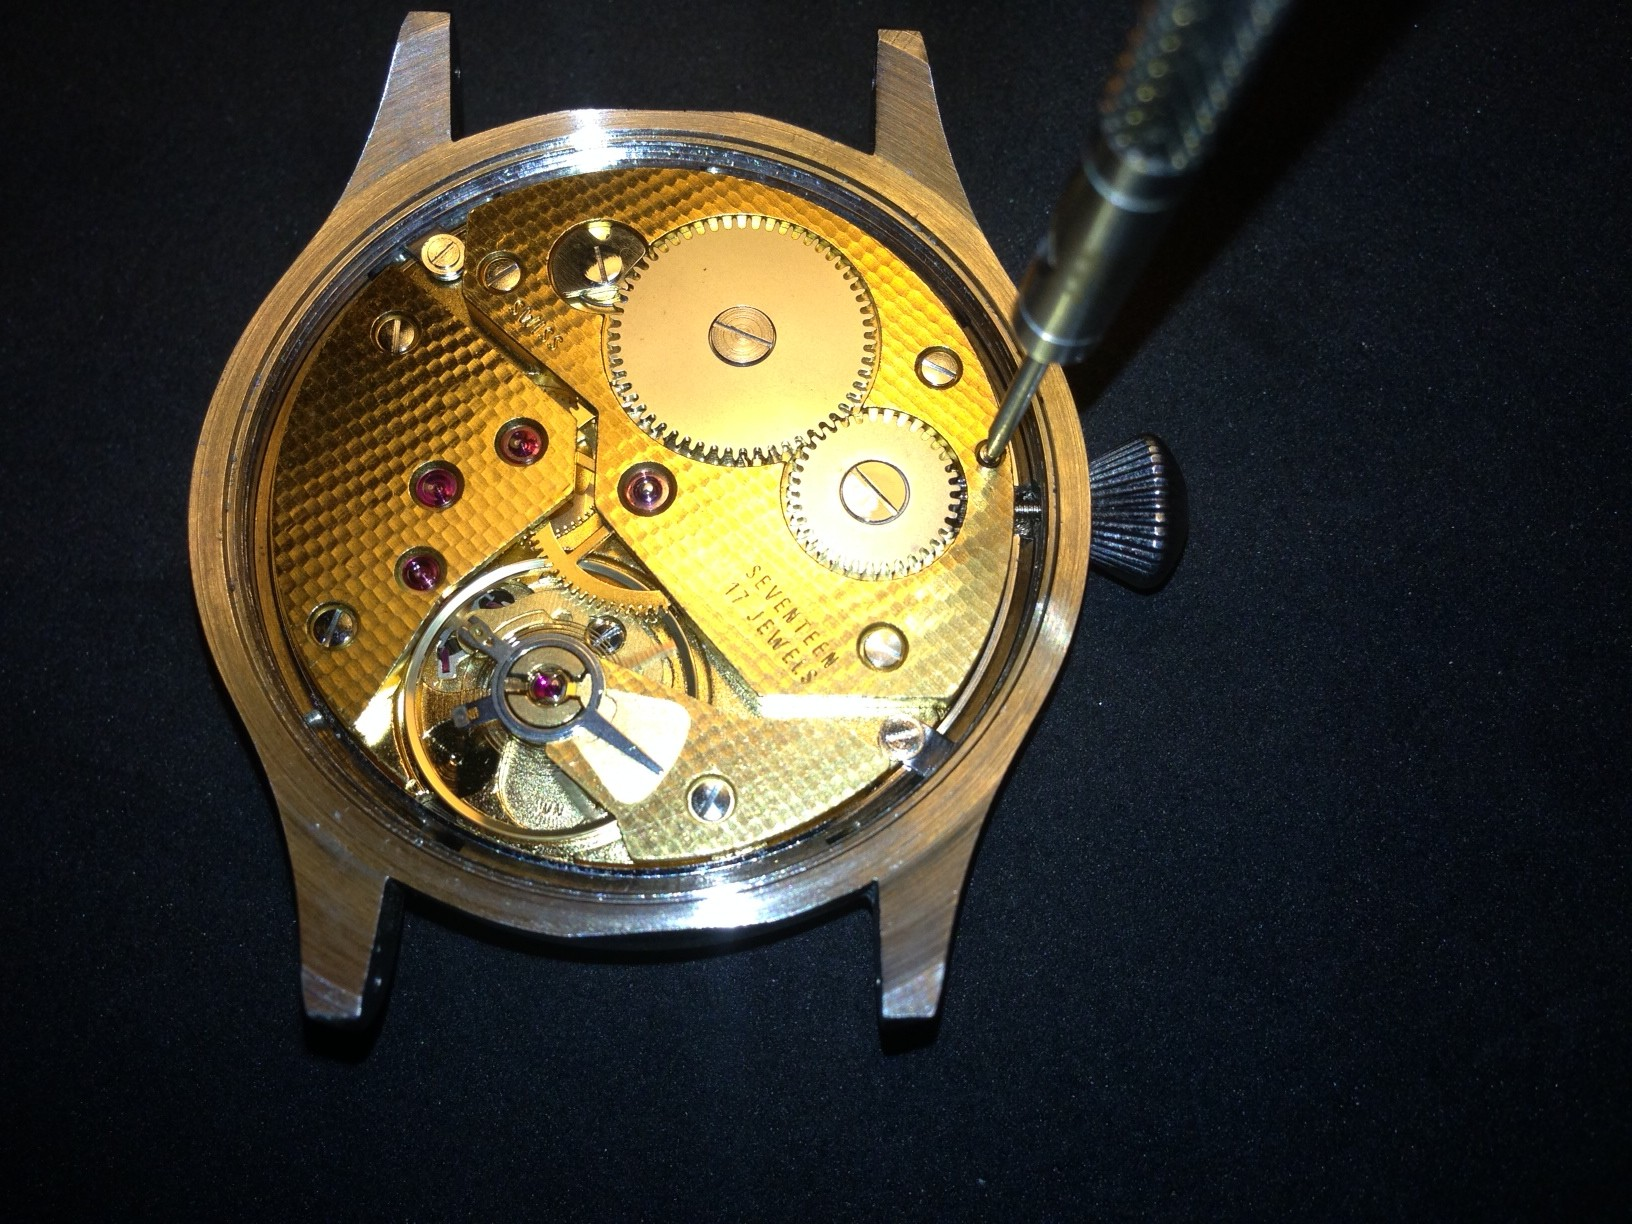 How to build your own mechanical watch - attach the crown